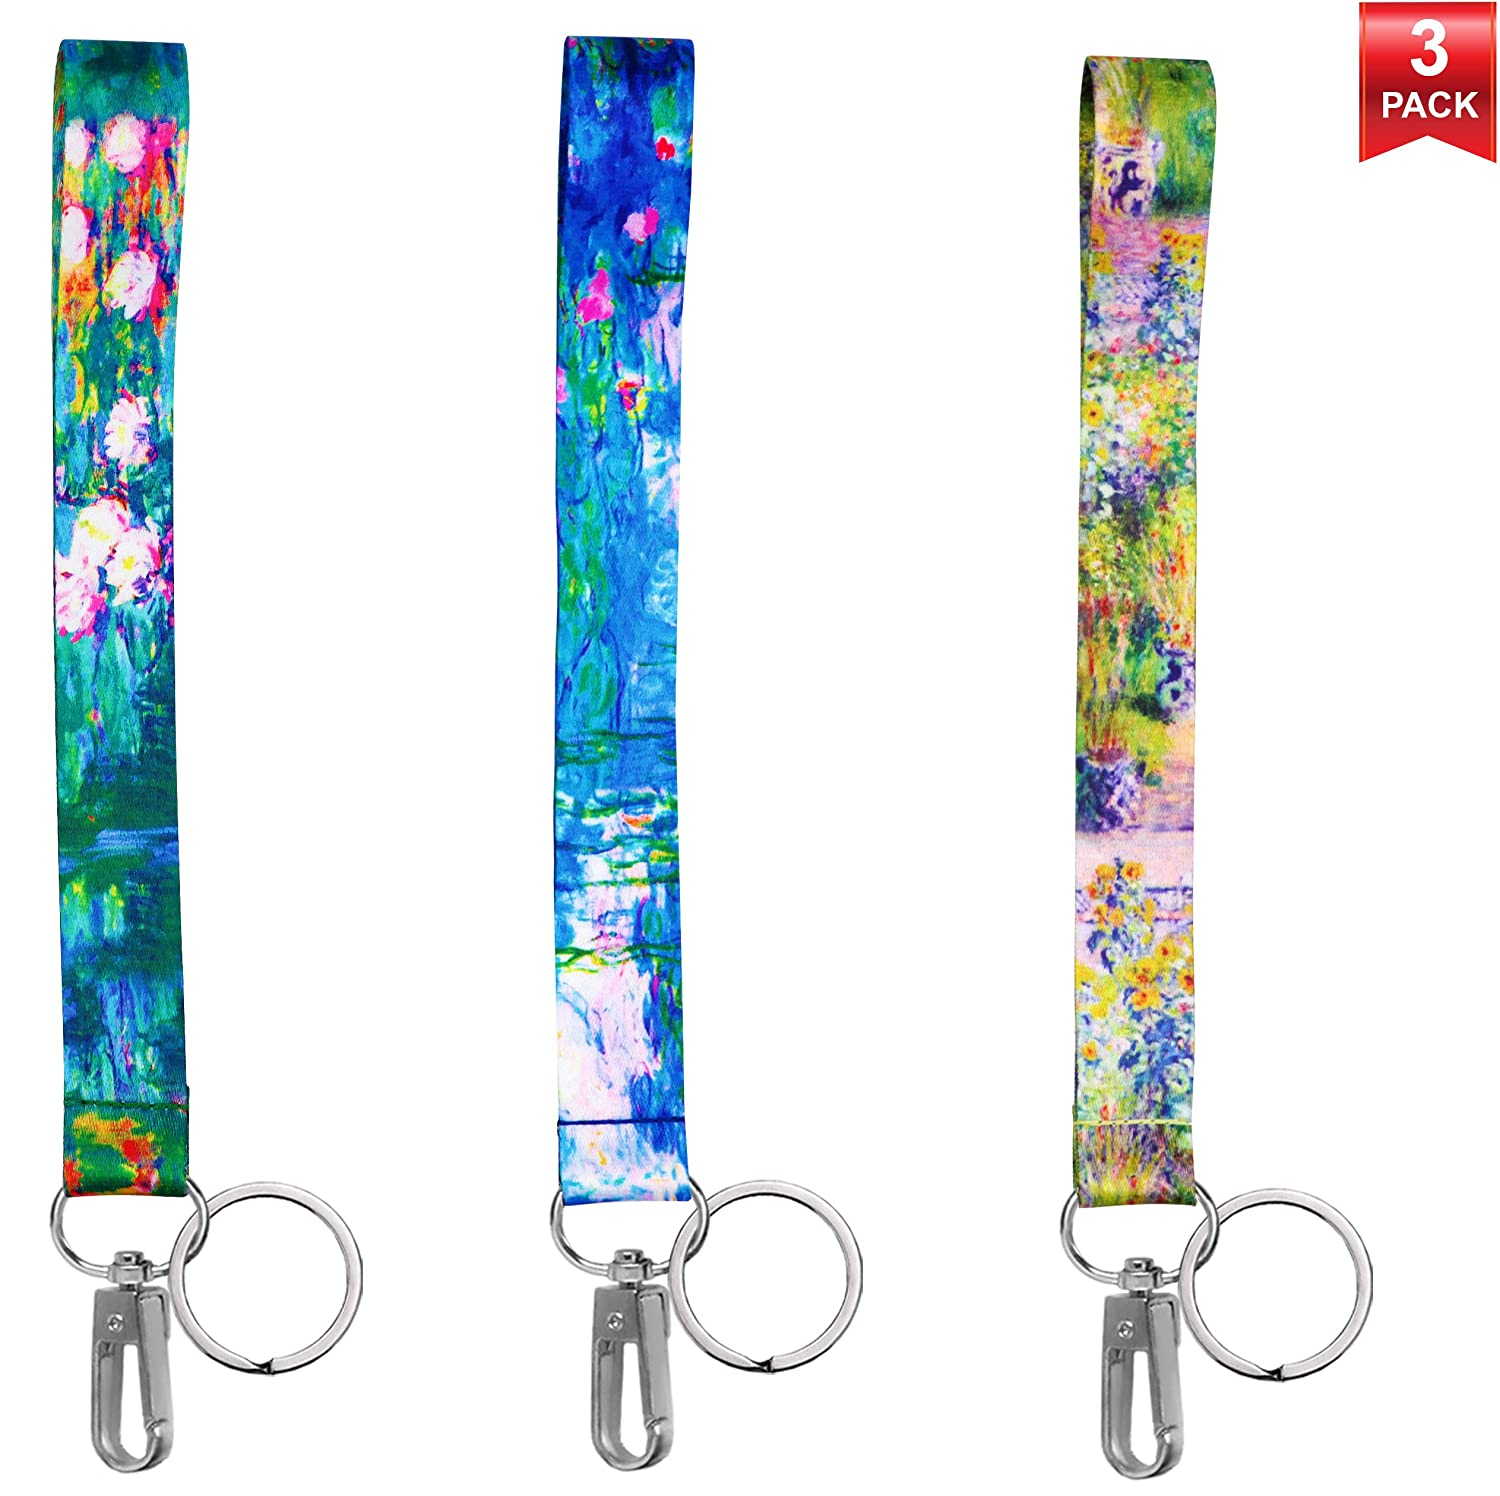 Teachers Waterproof Clear ID Badge Case Van Gogh Collection. Nurses 3-Pack Assorted Designs Lanyards with ID Holder /& Key Ring for Keys Cruise Ship Card Essential Cruise Ship /& Work Accessories